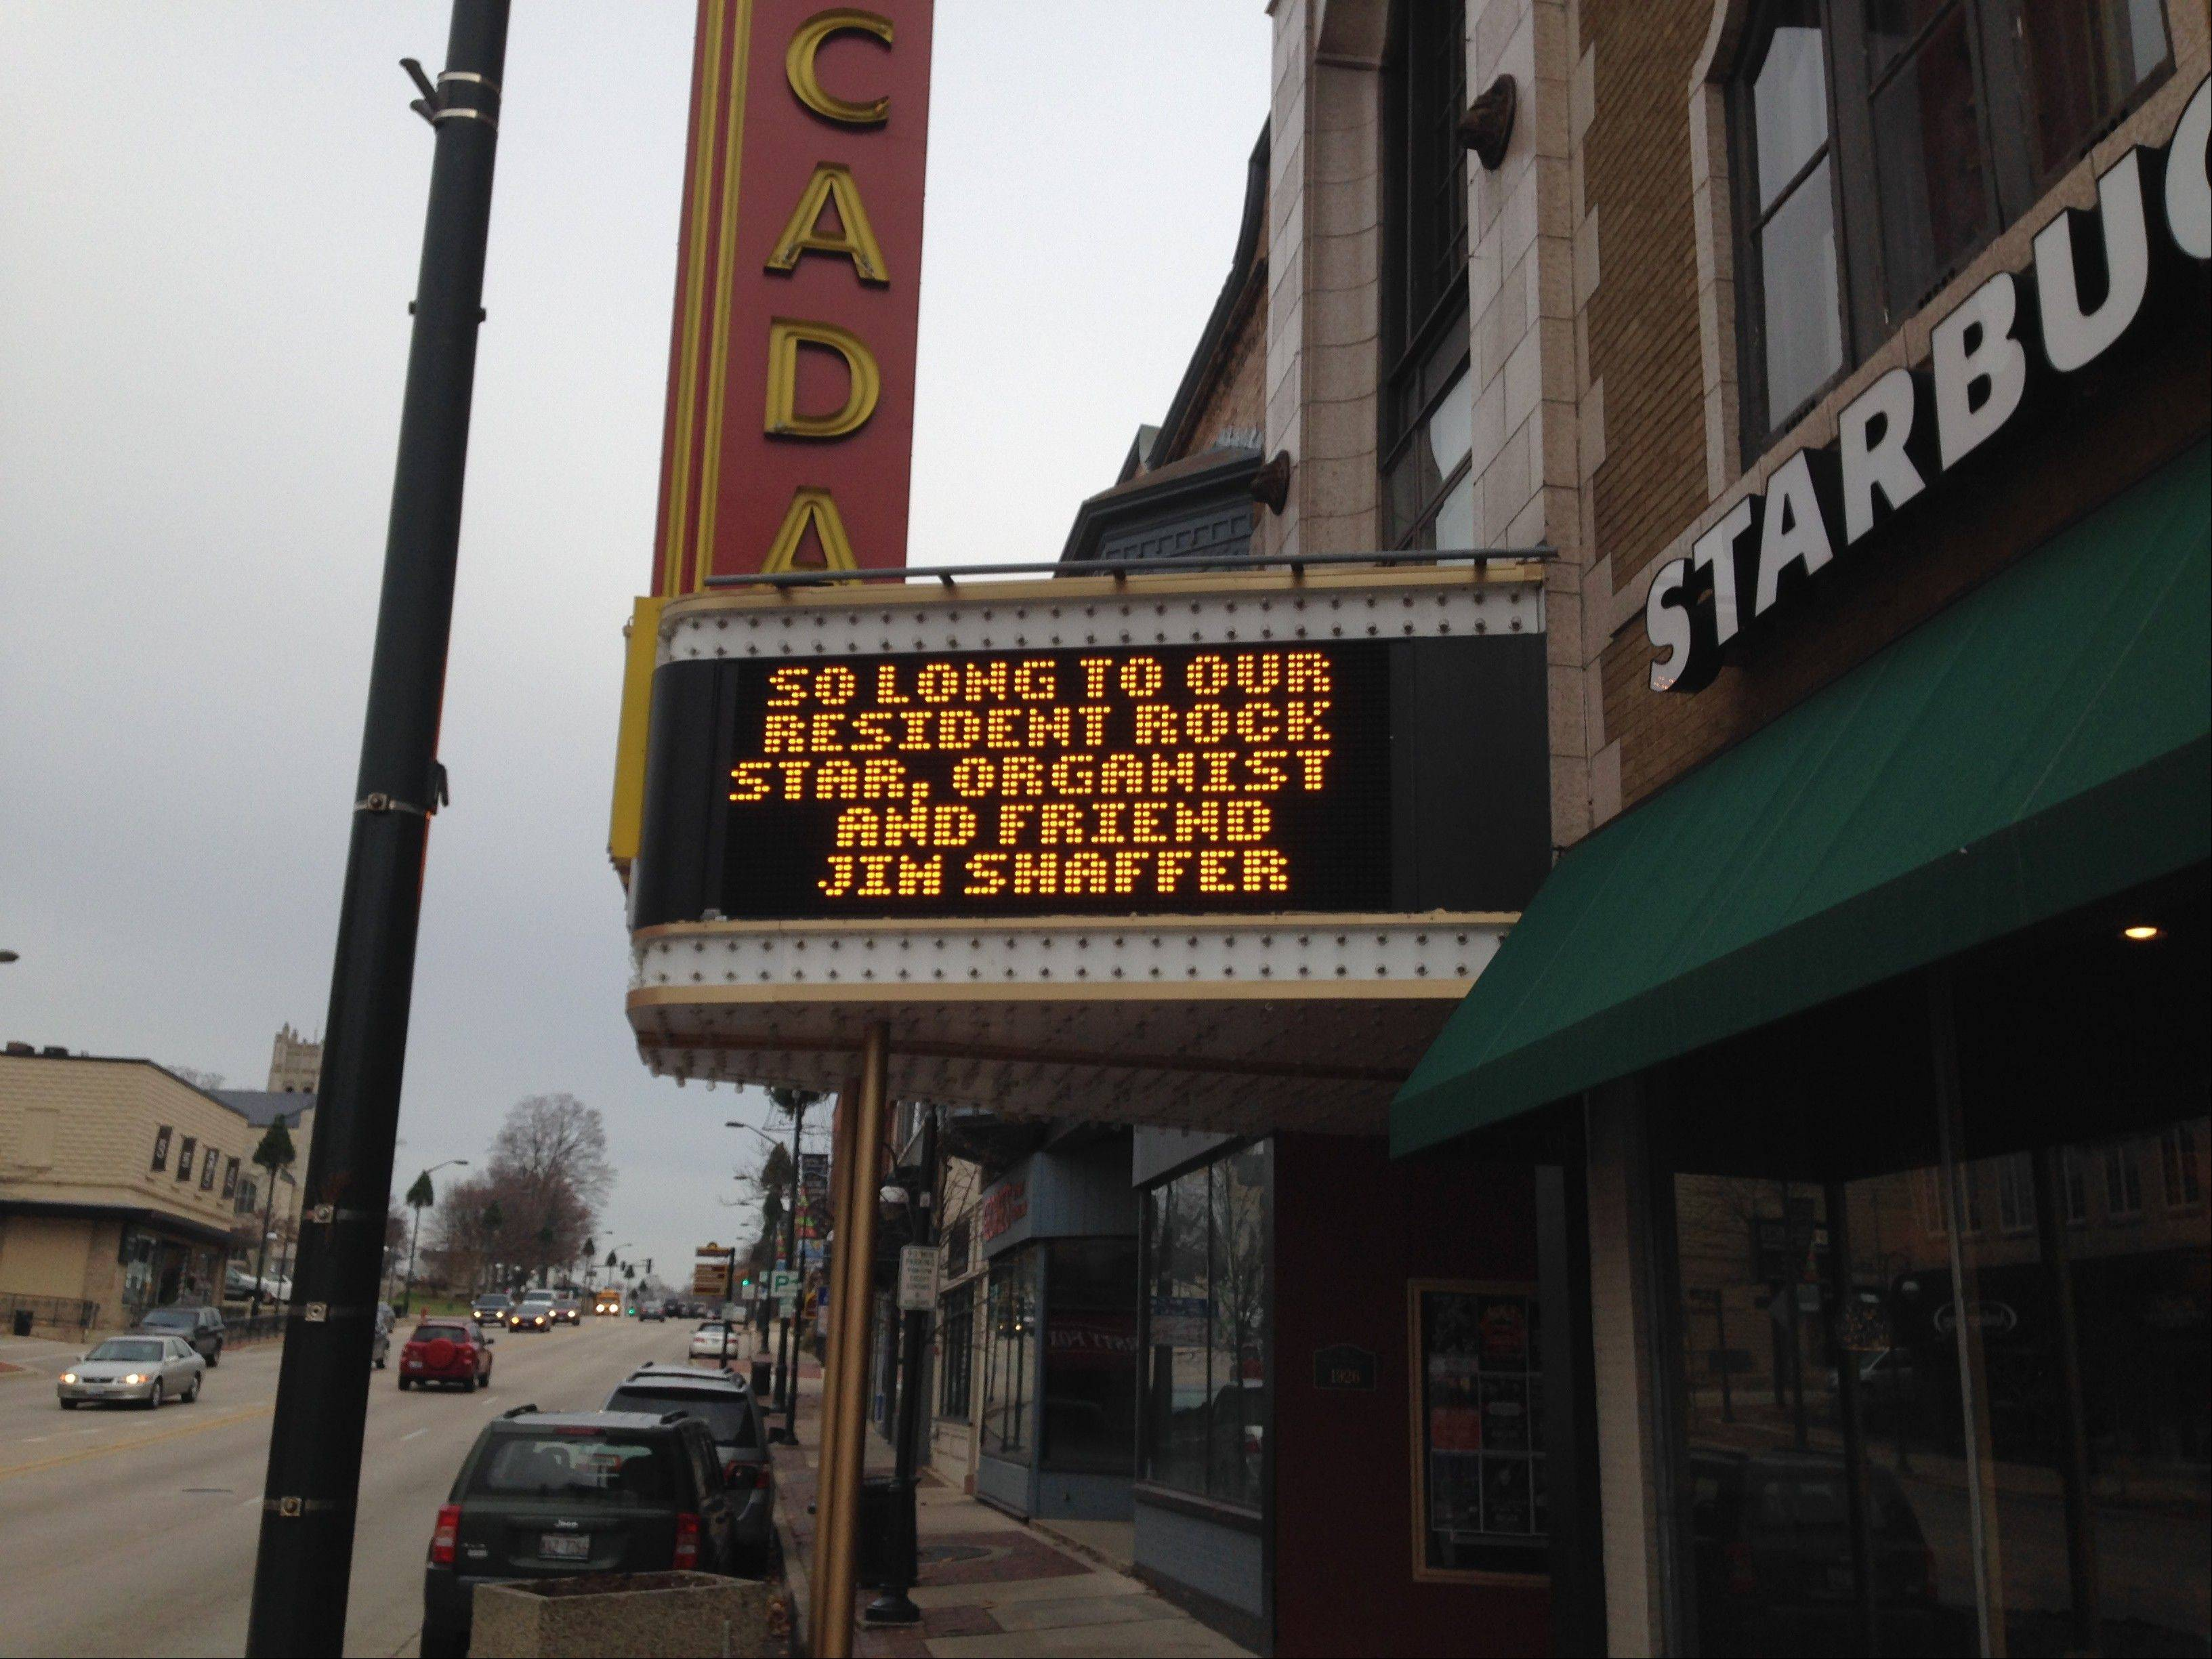 "The iconic marquee of the Arcada Theater in downtown St. Charles made an announcement Wednesday: ""So long to our resident rockstar, organist and friend Jim Shaffer."" Shaffer died at age 78."